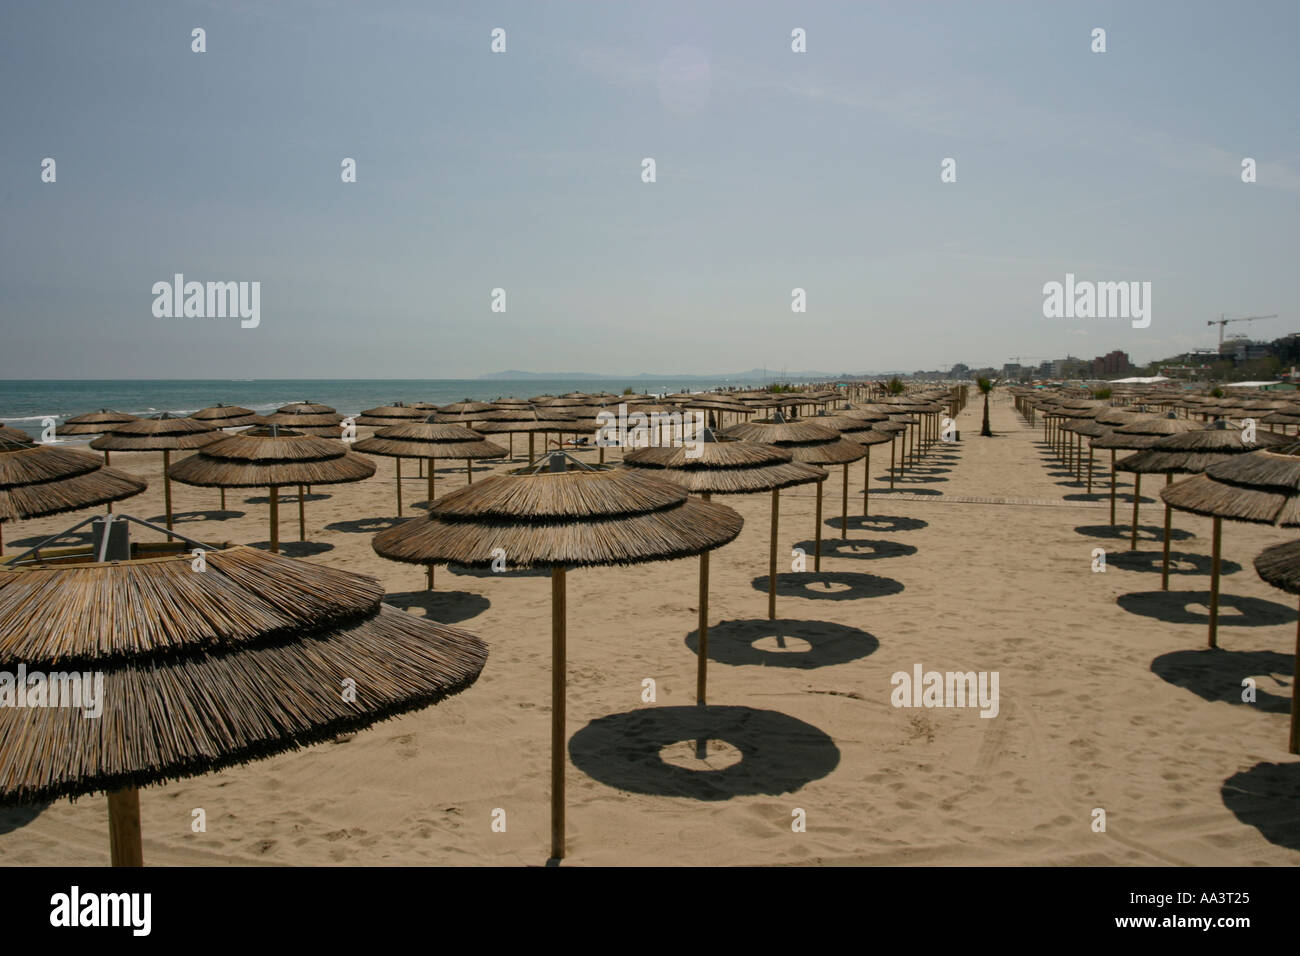 Parasols on the beach in Rimini Northern Italy Stock Photo